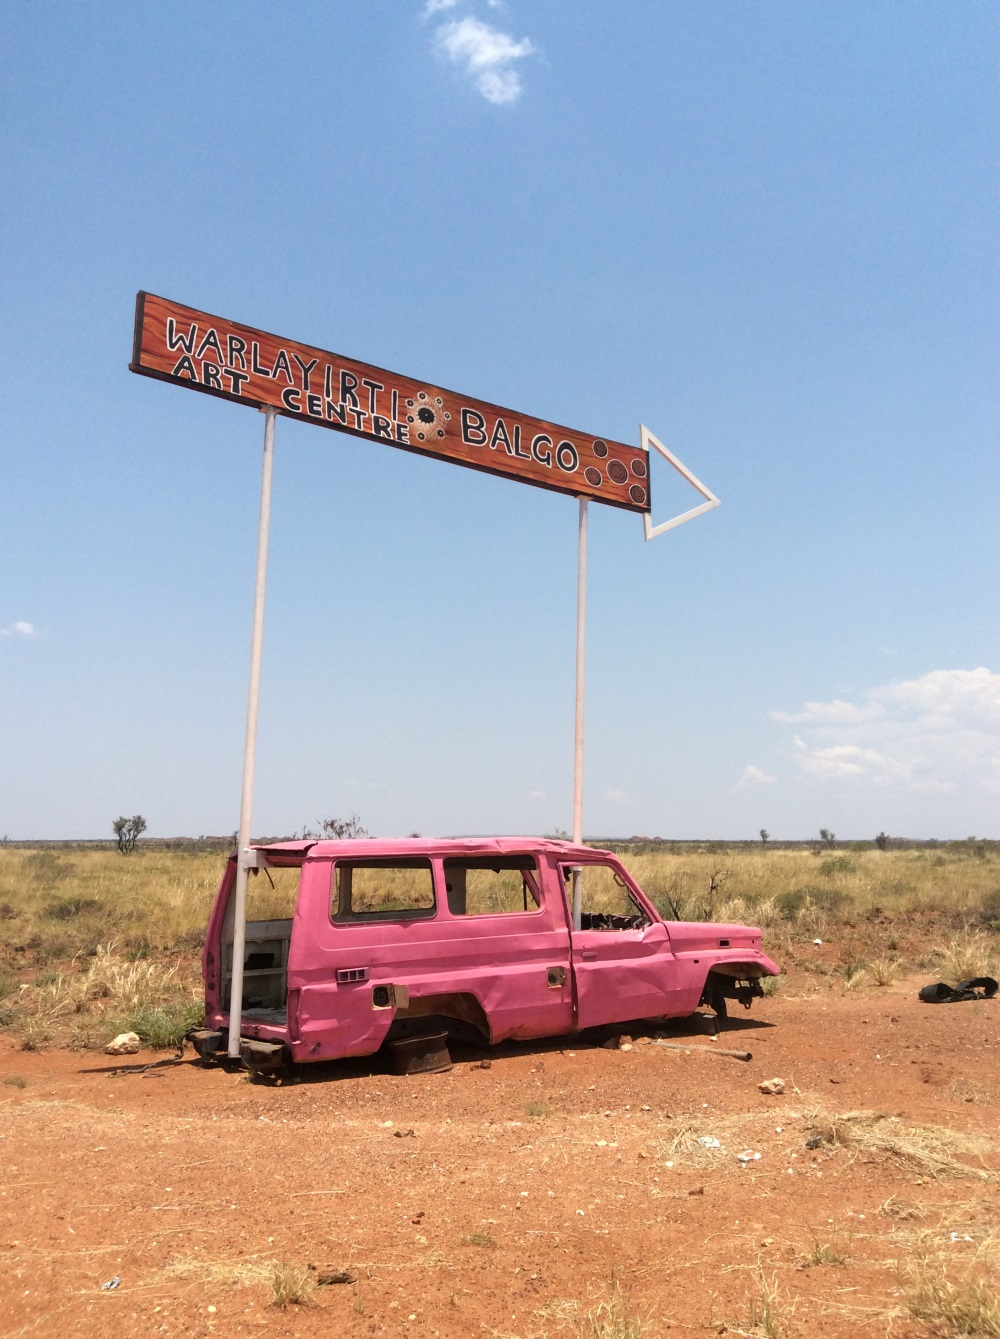 Sign to Warlayirti Art Centre at Tanami and Balgo road junction. Balgo, Nov 2017 © AGWA